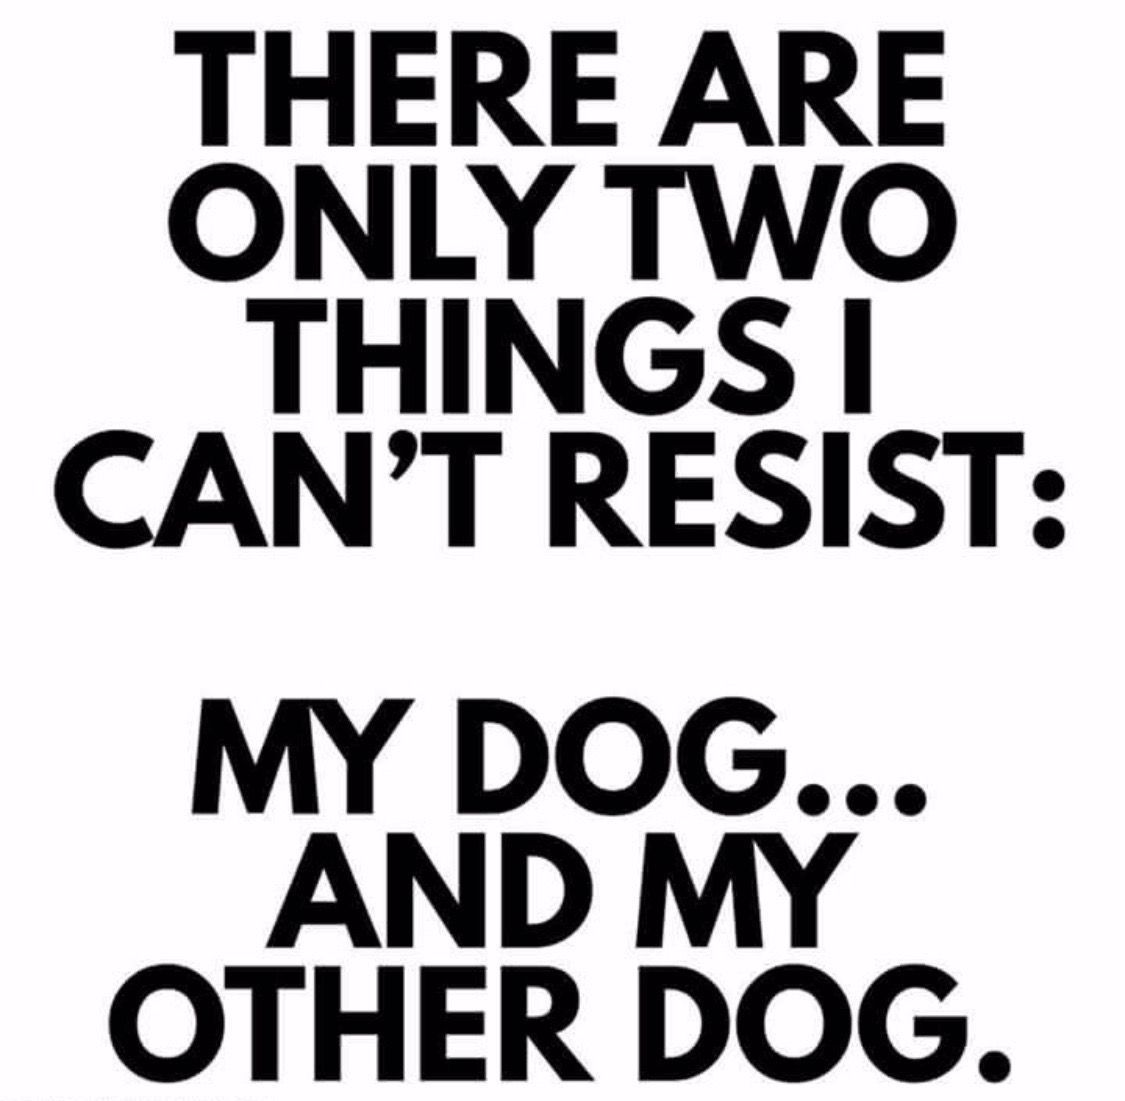 Pin by Gina Stiedemann on Dog in 2020 Dog quotes funny